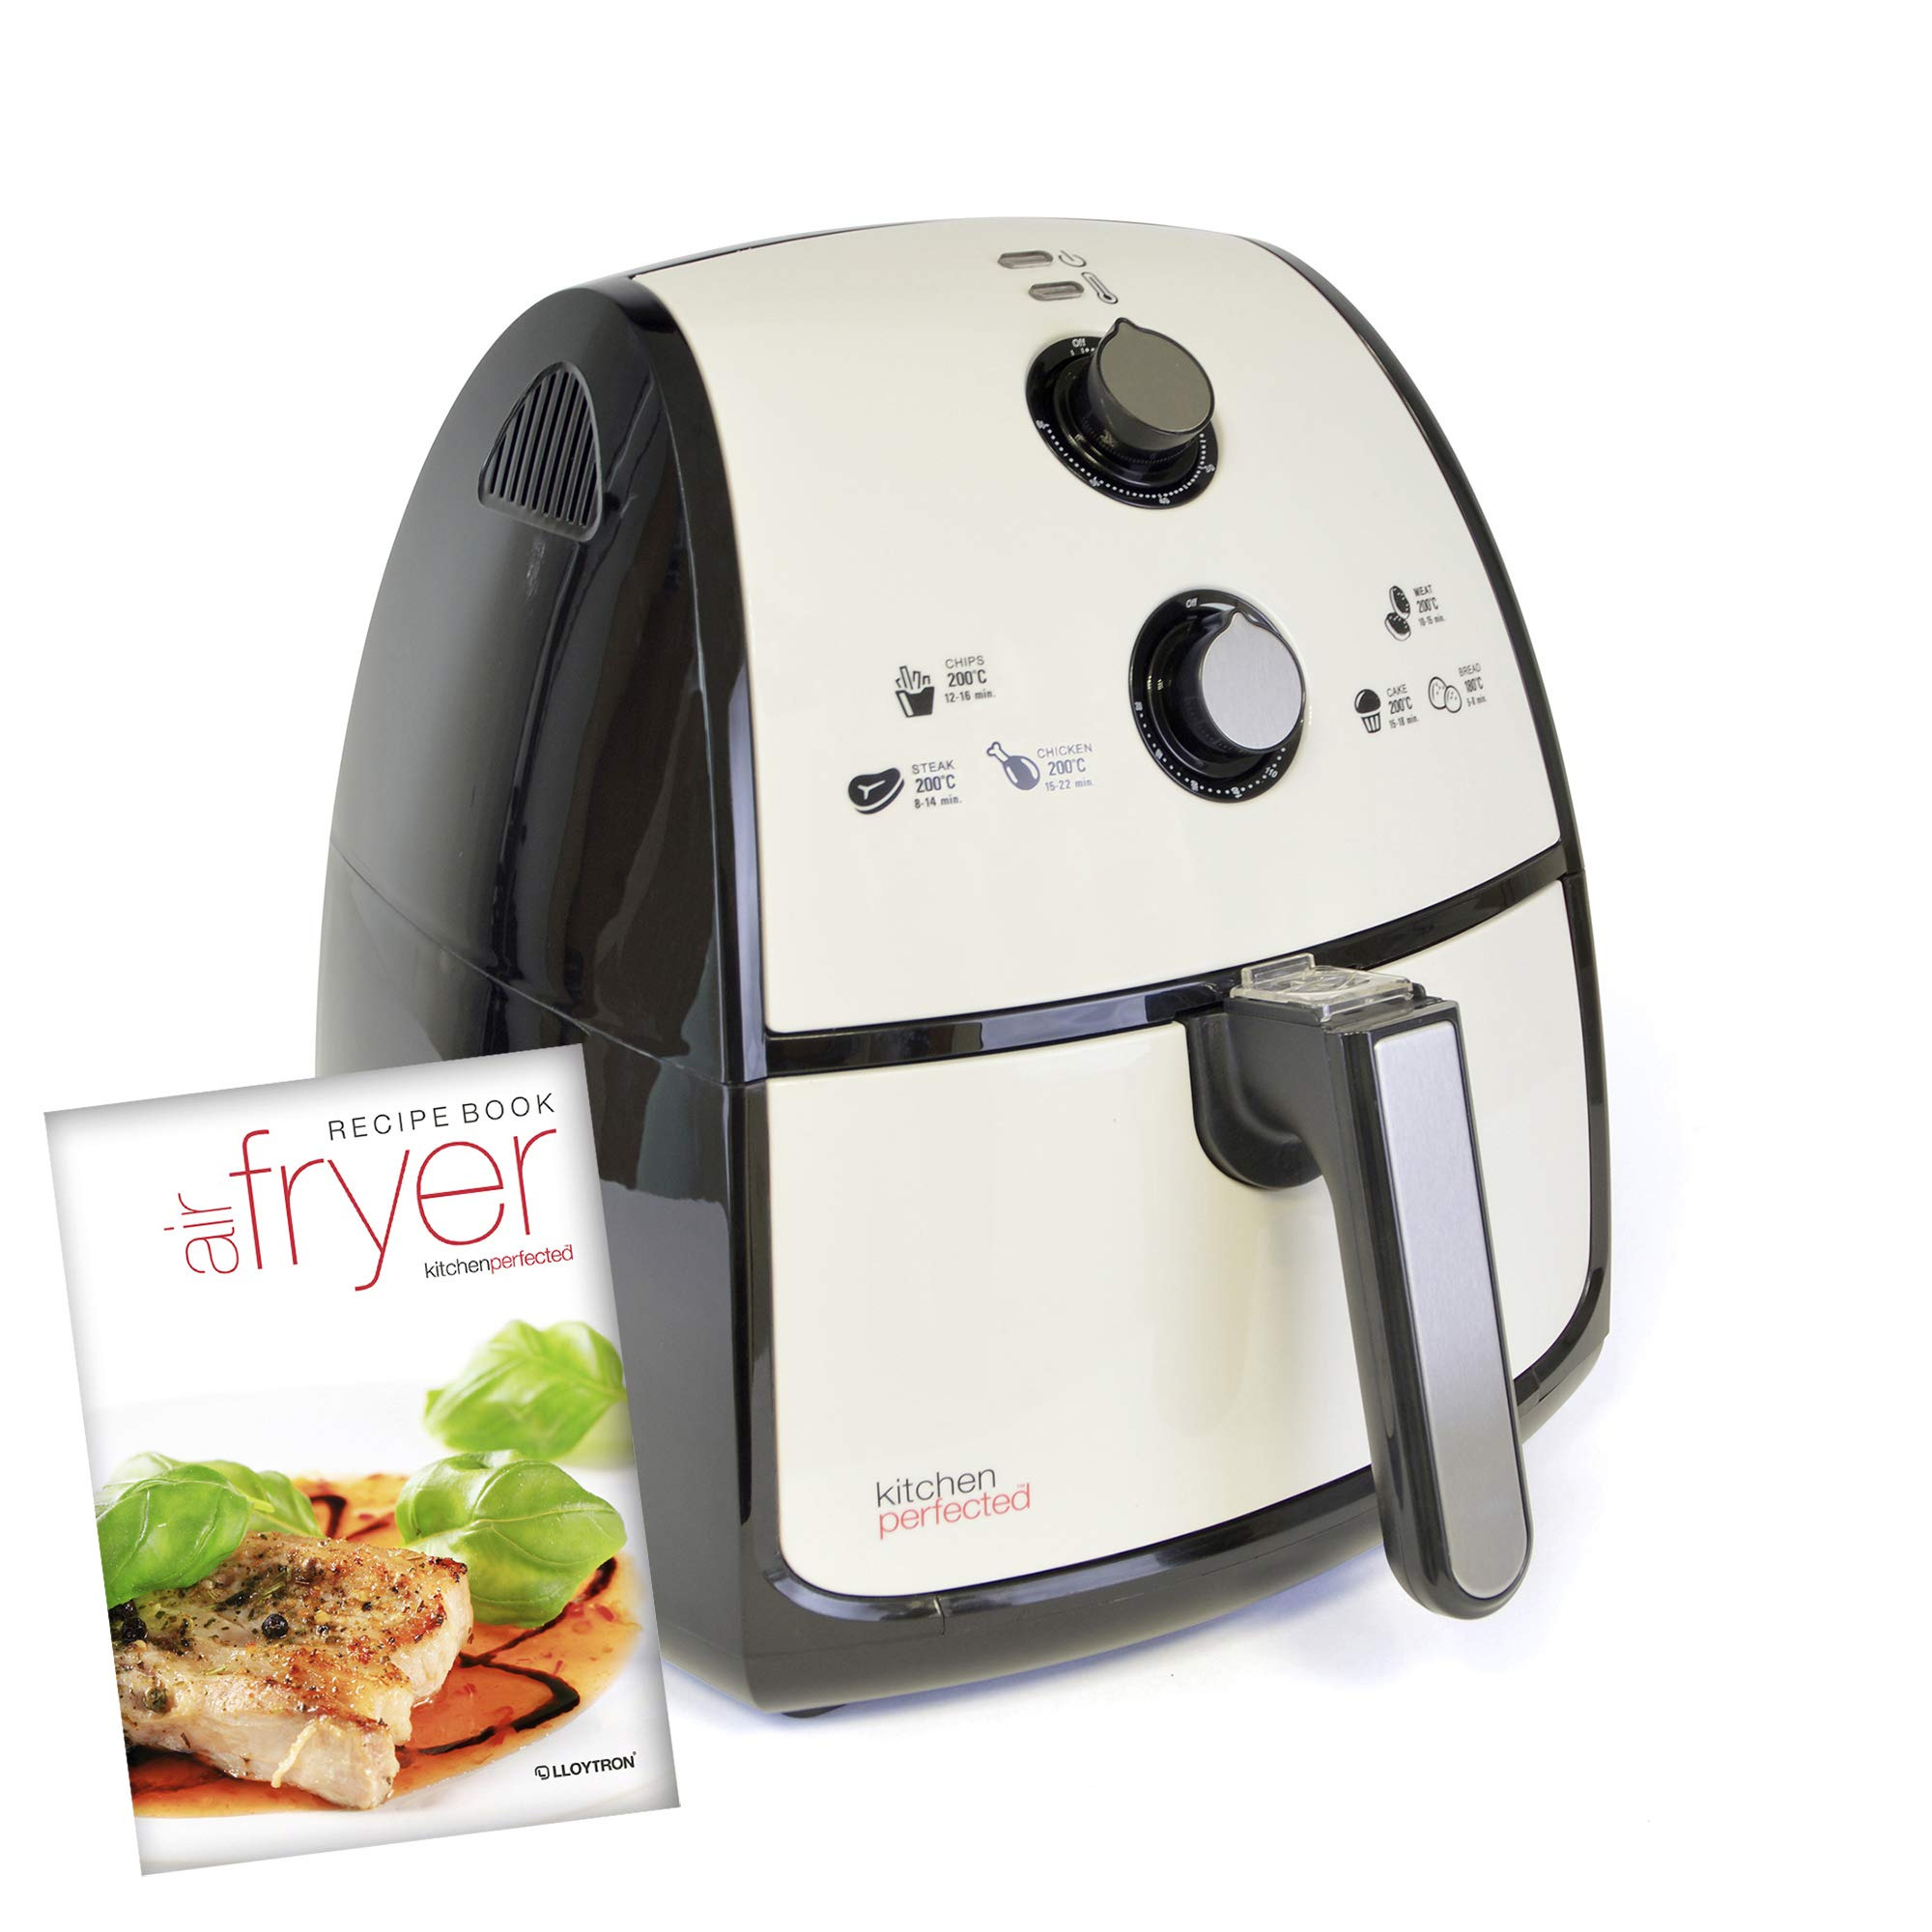 Kitchen Perfected 4L XL Family Sized AIROFRYER – Portable Fryer / Grill / Oven / Steamer Uses 80% Less Oil. 1500w Extra Large Power Air Fryer in Ivory White.